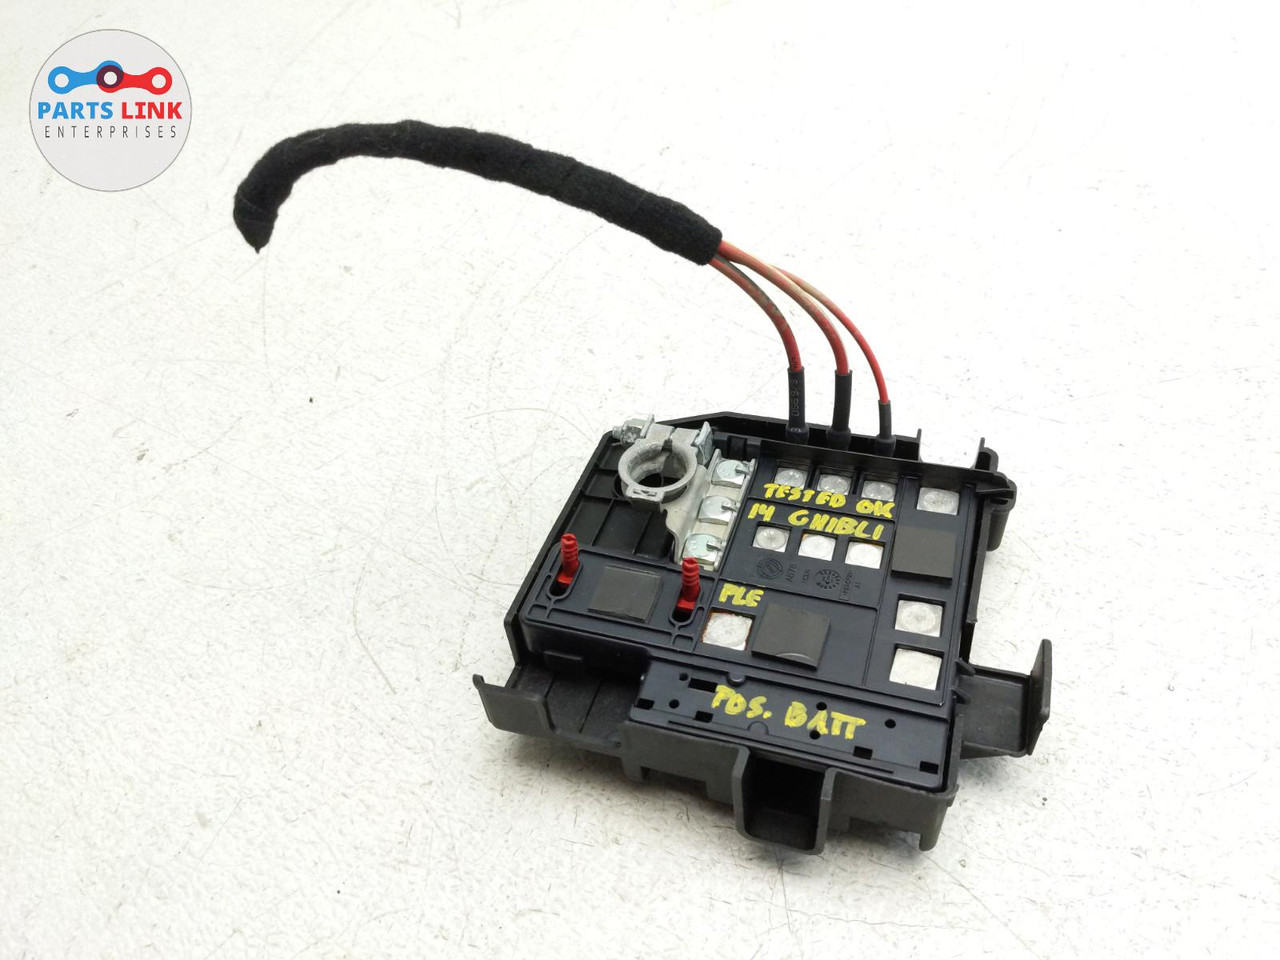 2014-2020 MASERATI GHIBLI S Q4 POSITIVE BATTERY TERMINAL CABLE FUSE BOX  MODULE - PARTS LINK ENT | Battery Cable To Fuse Box |  | Parts Link Enterprise